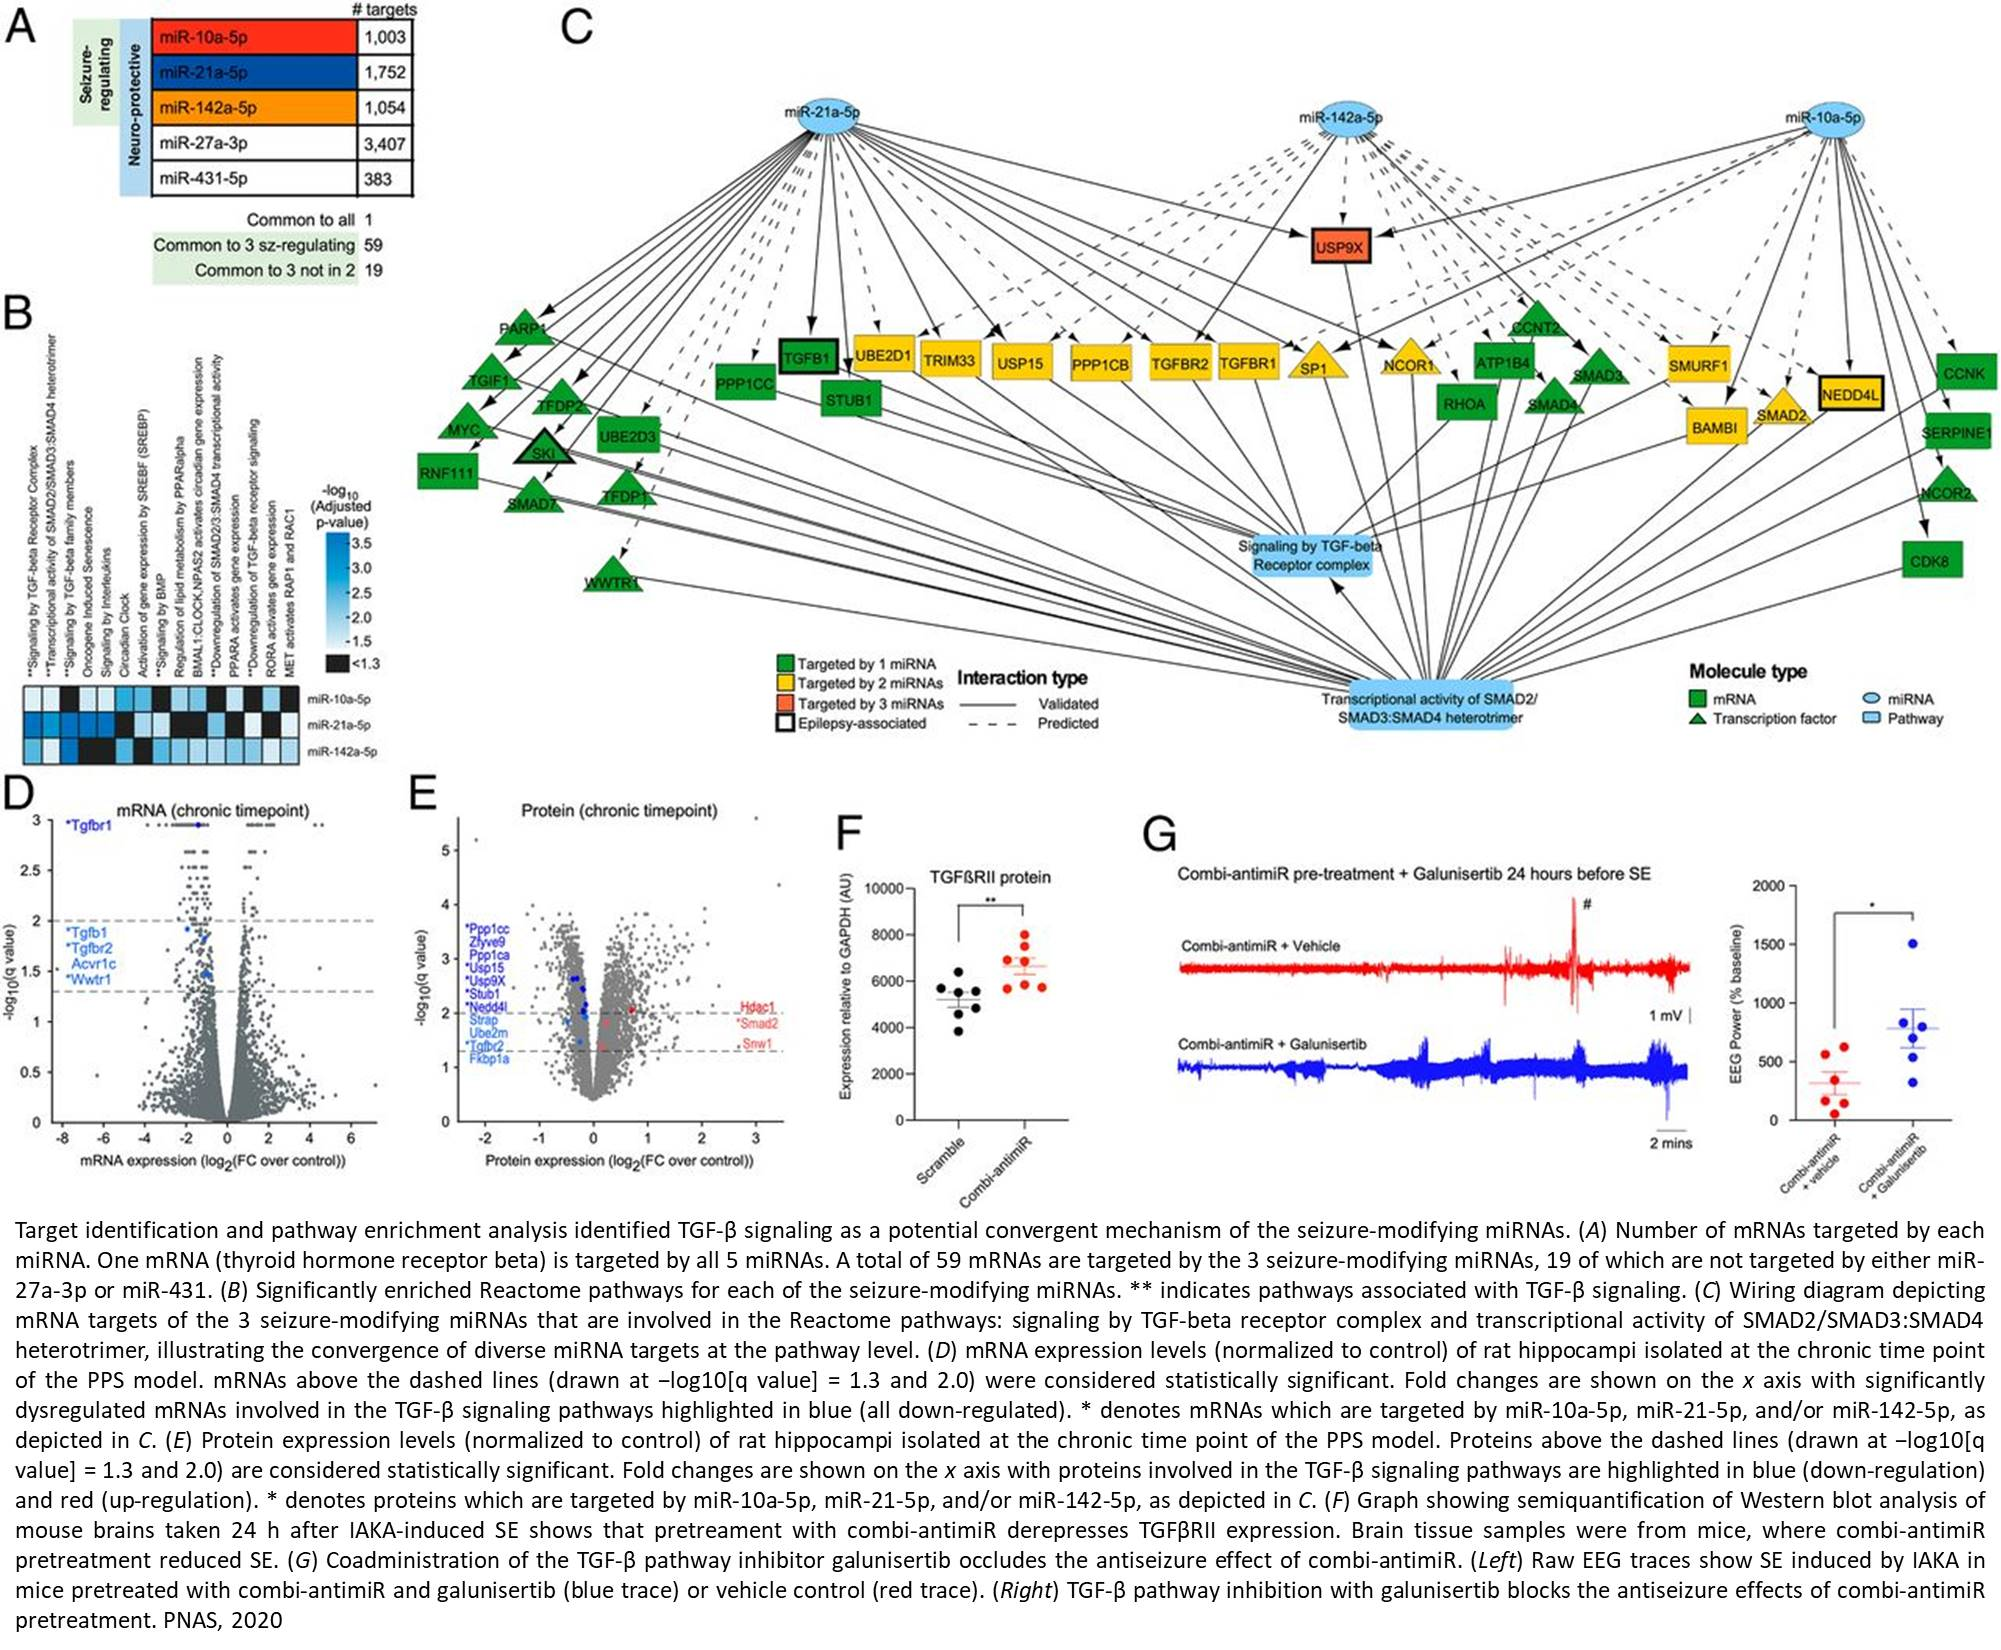 MicroRNAs as potential new targets for treating epilepsy